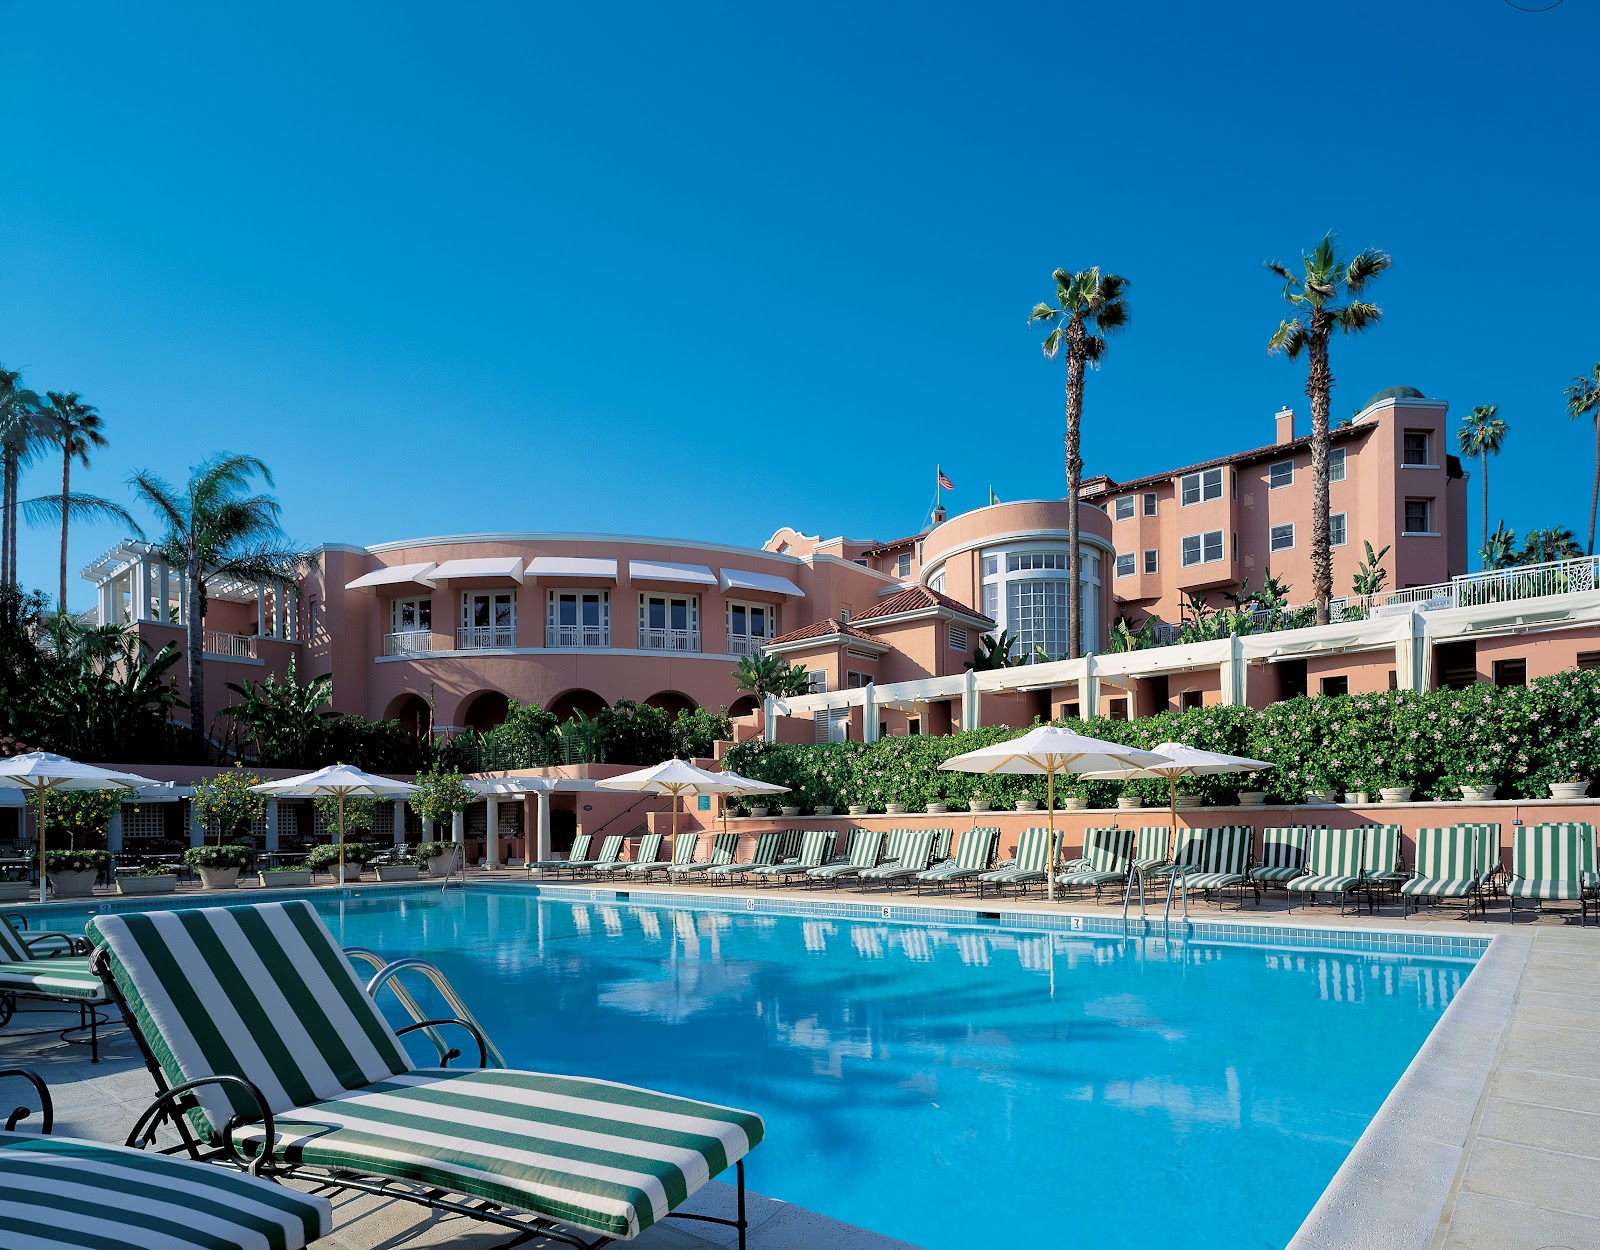 Robert Broad Travel: The Beverly Hills Hotel And Bungalows